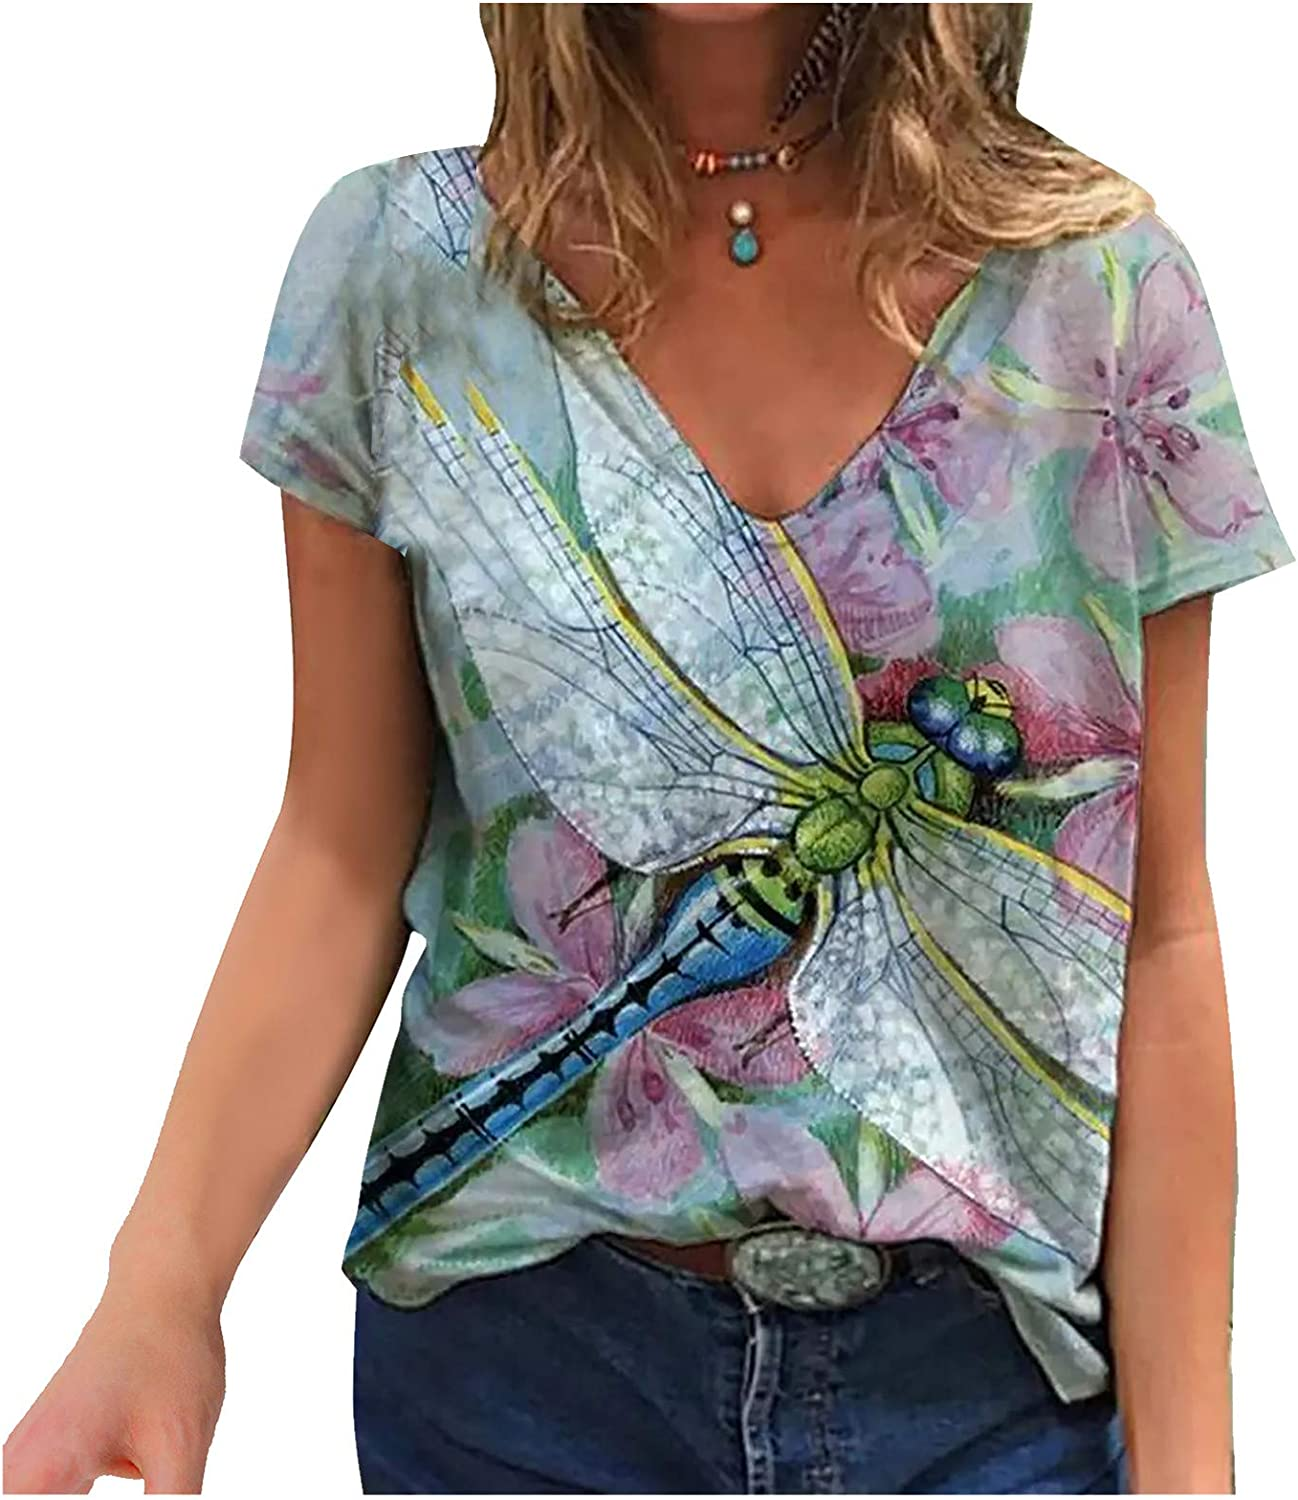 Womens Tshirts,Women Short Sleeve Shirt Flower Graphic Tie Dye Tees Casual Summer Tops Comfy V Neck Blouse